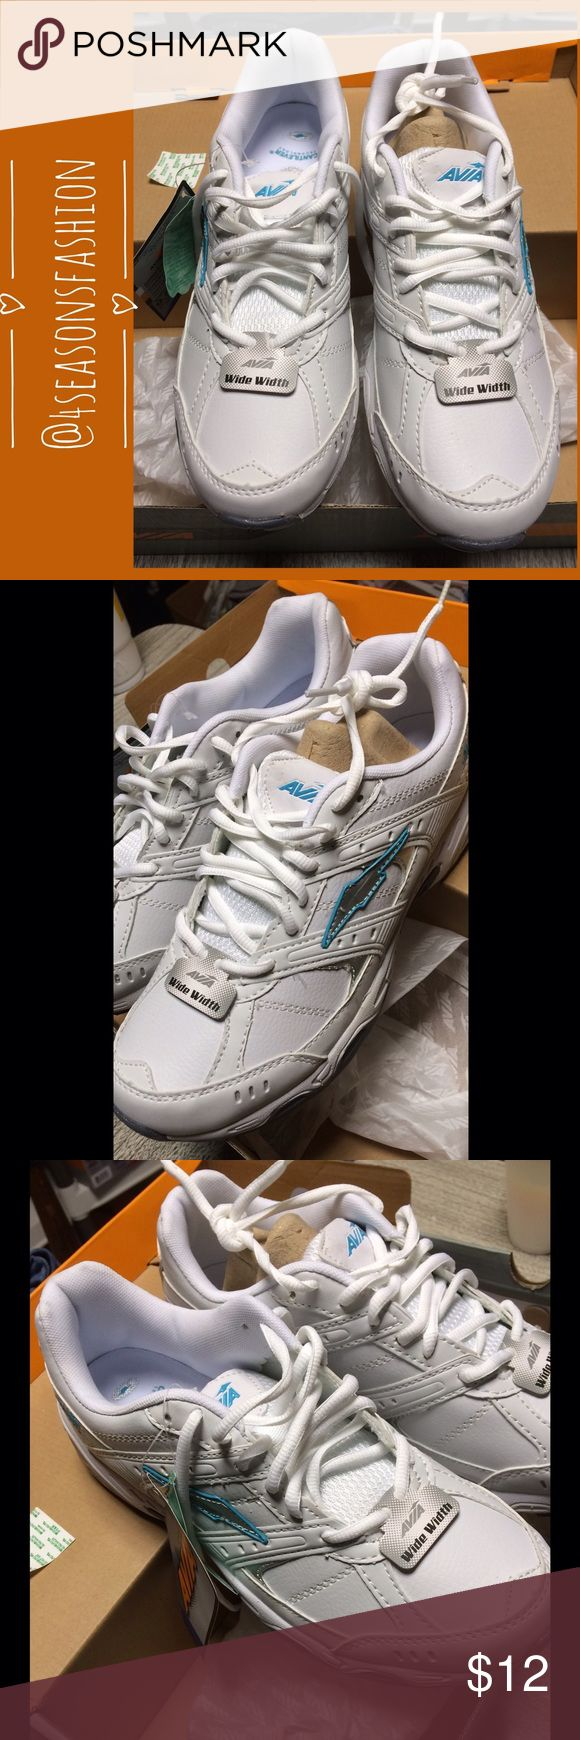 🎉 BRAND NEW LISTING 🎉 AVIVA WHITE WALKING SHOE. BRAND NEW. SHIPS WITH NO BOX. Any questions please ask before you buy. Thank you. Avia Shoes Athletic Shoes